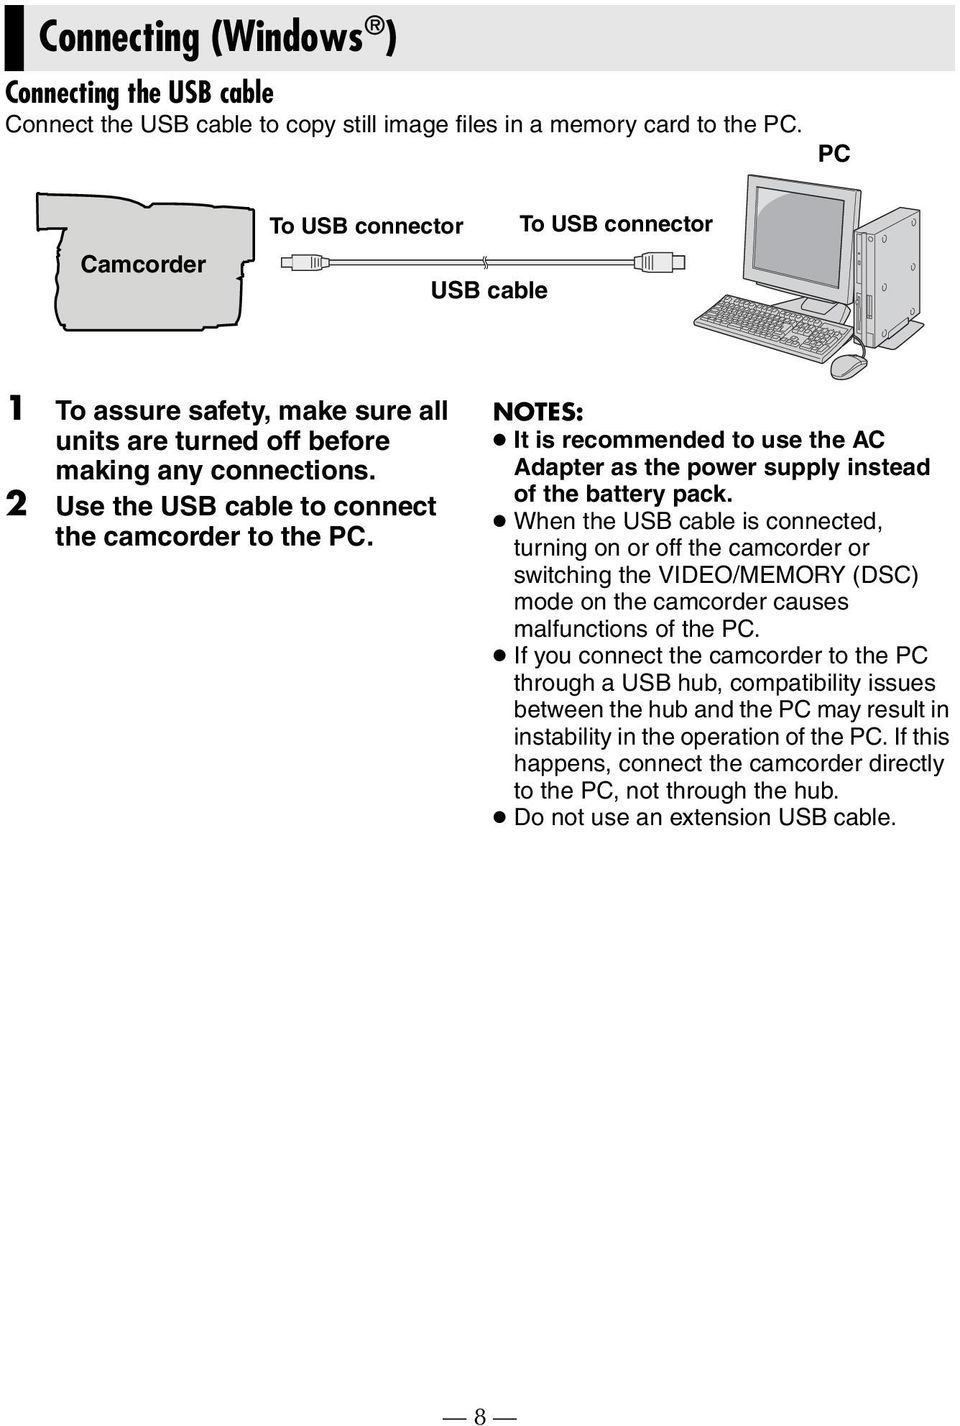 NOTES: It is recommended to use the AC Adapter as the power supply instead of the battery pack.